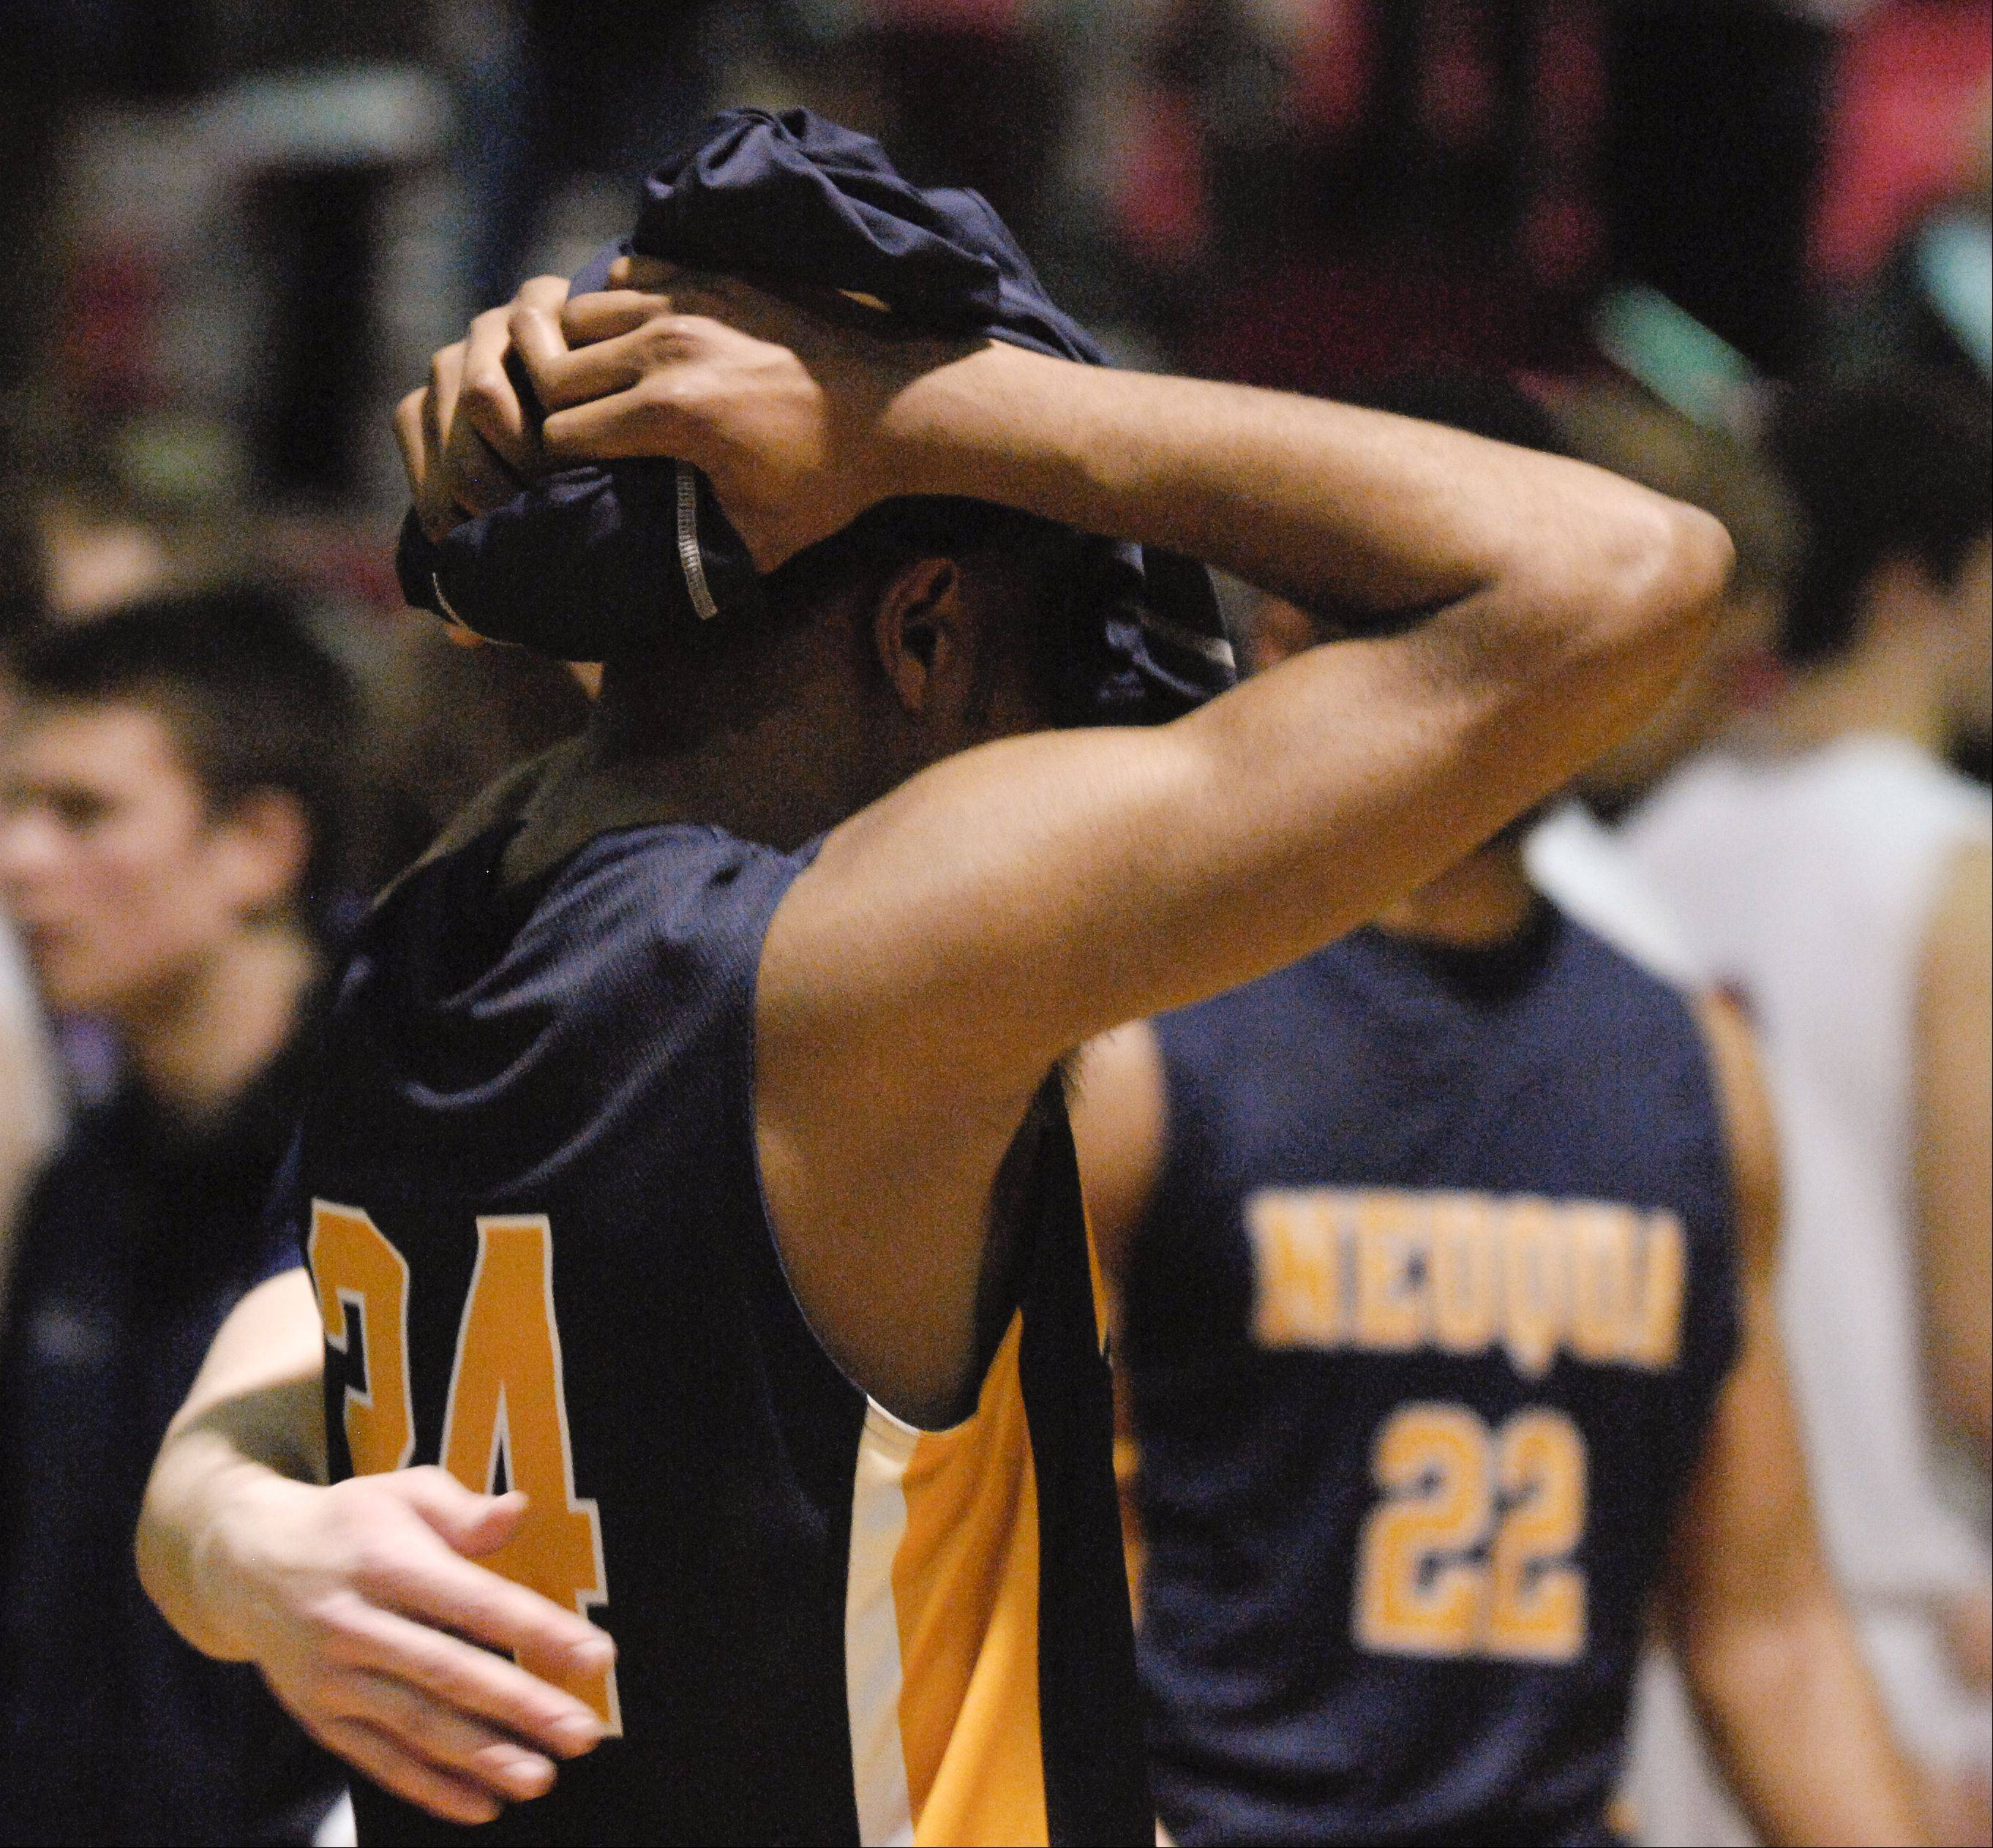 Jabari Sandifer of Neuqua Valley reacts to loosing to Benet in the boys basketball in Class 4A Bolingbrook sectional semifinals in Bolingbrook, 68-62.